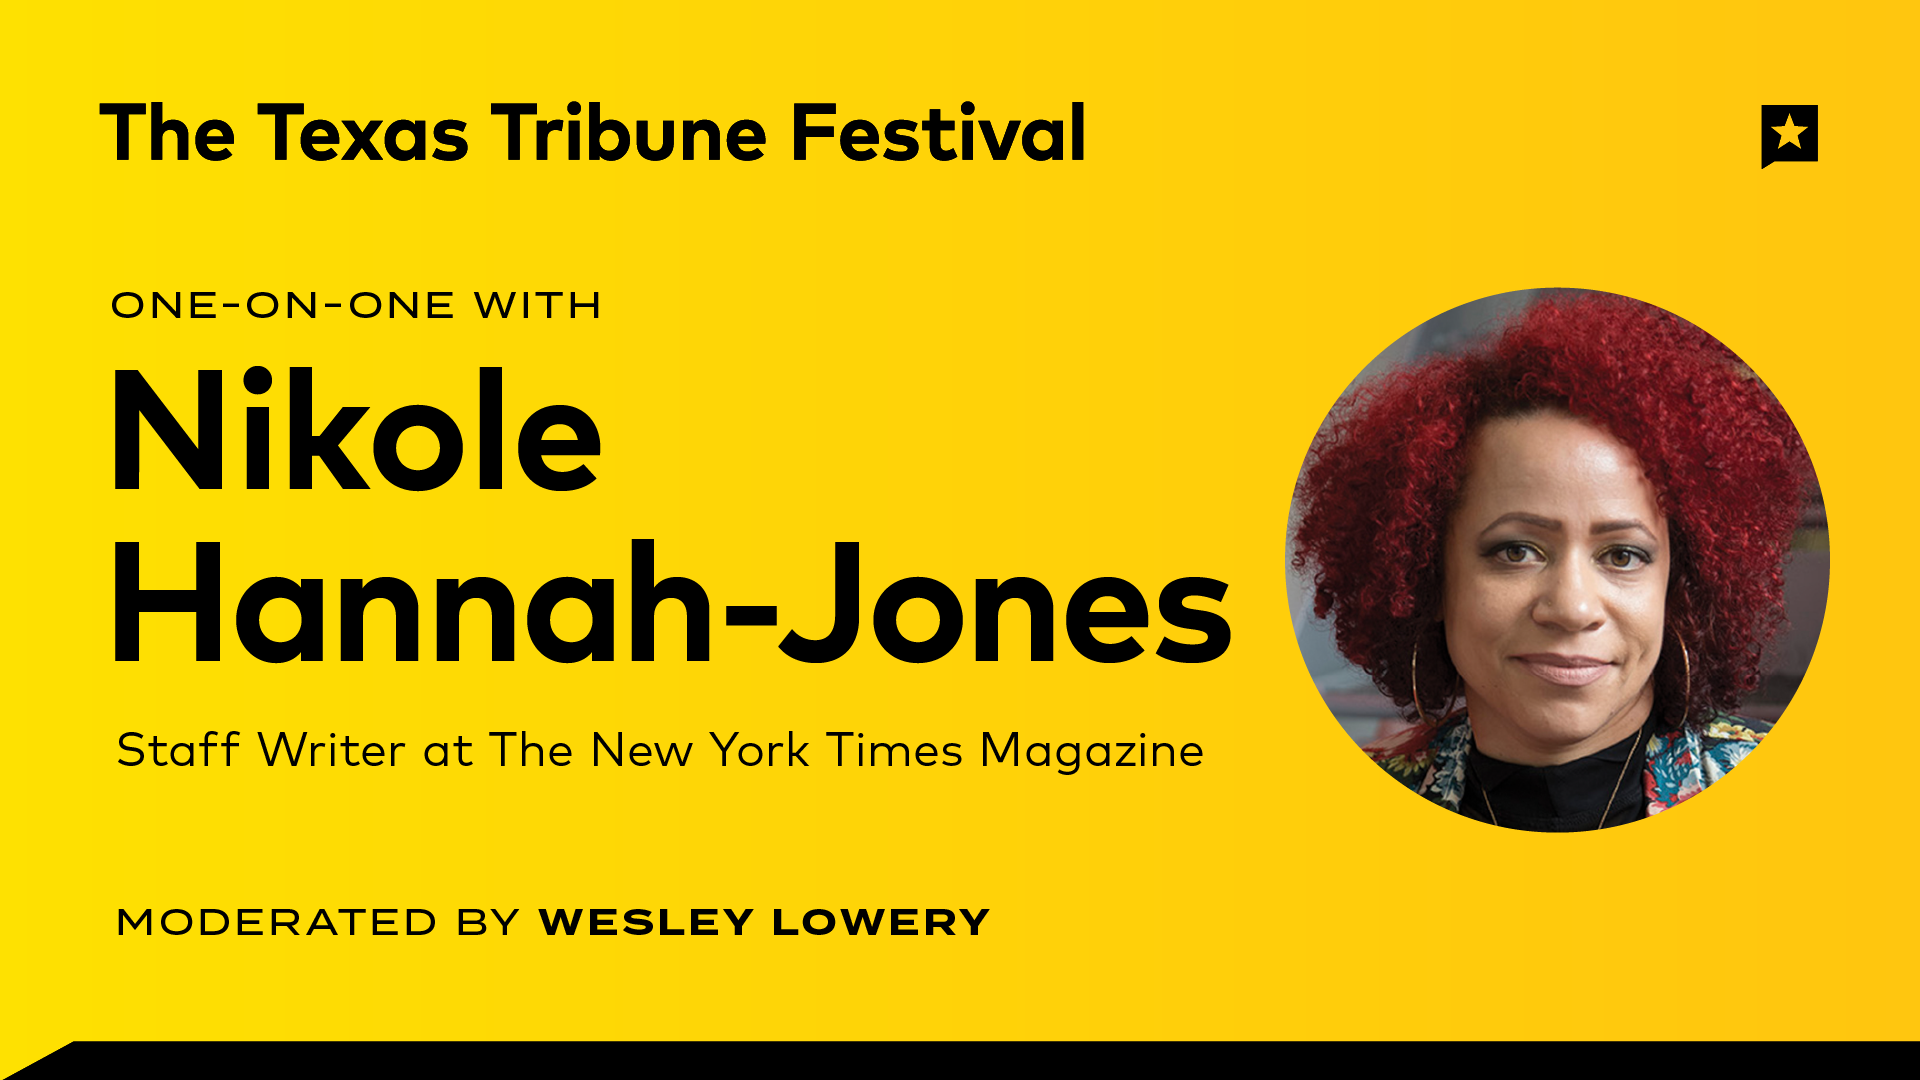 One-on-One with Nikole Hannah-Jones